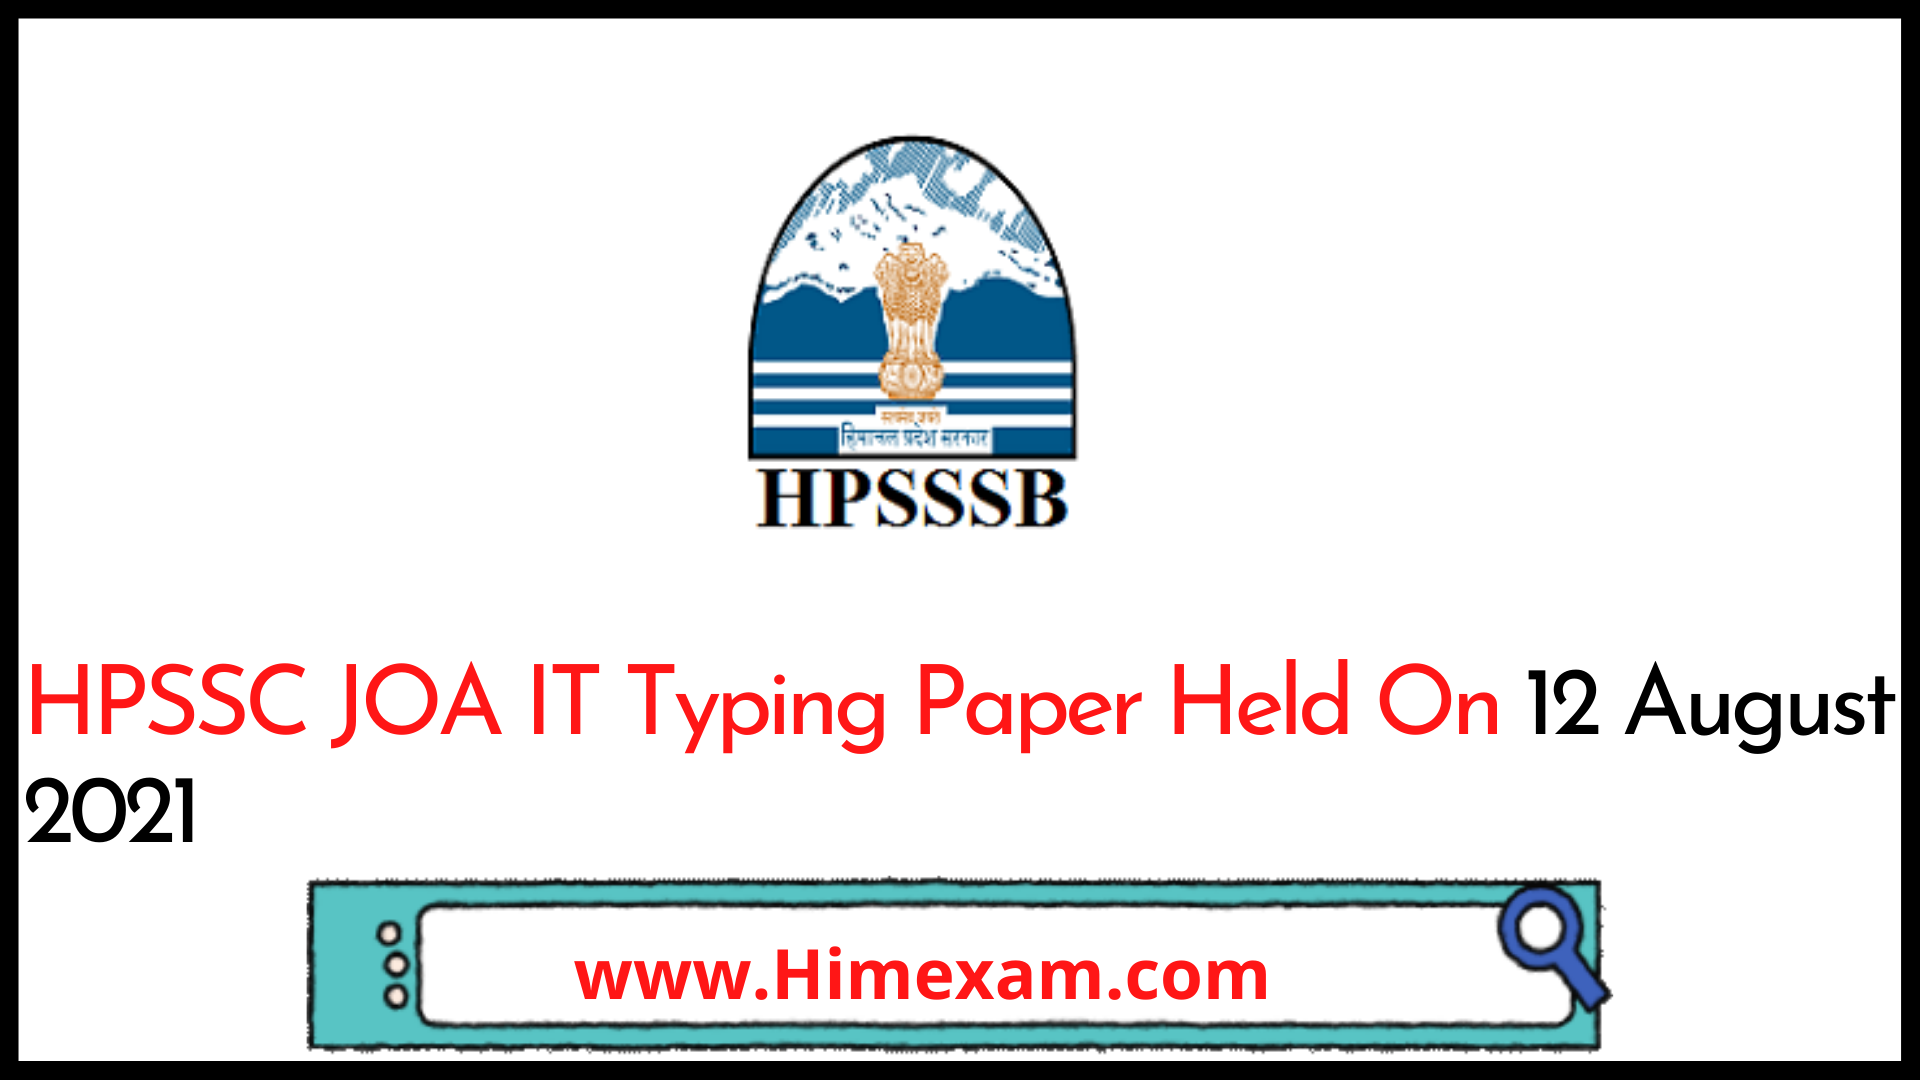 HPSSC JOA IT Typing Paper Held On 12 August 2021